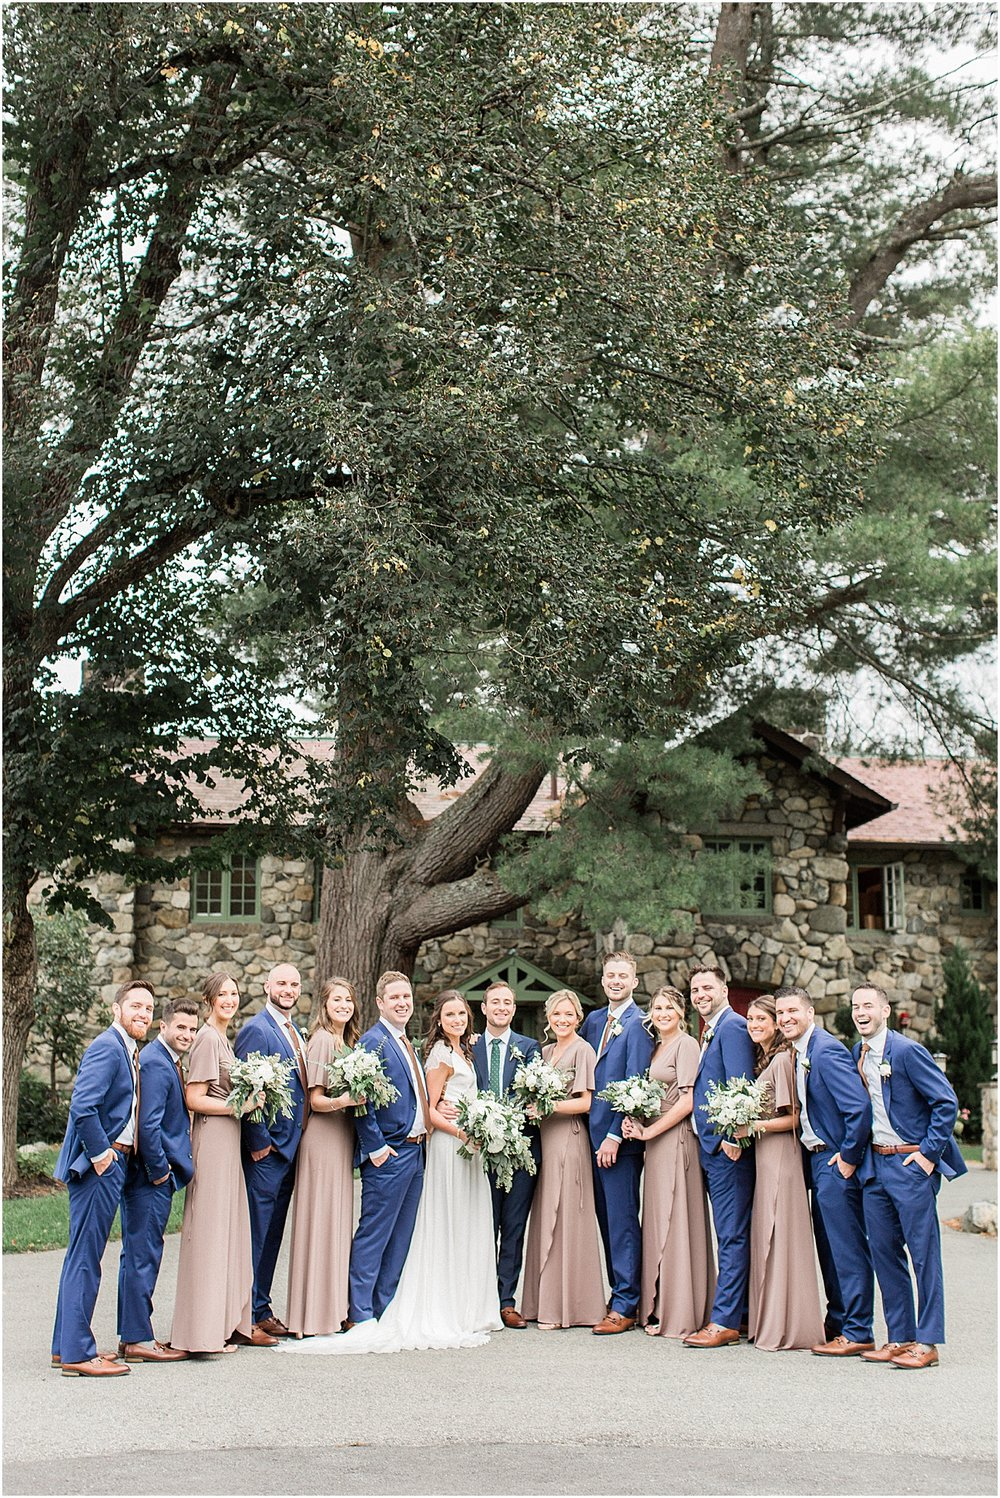 jenna_mike_willowdale_estate_topsfield_neutral_whites_greens_fall_cape_cod_boston_wedding_photographer_meredith_jane_photography_photo_1464.jpg